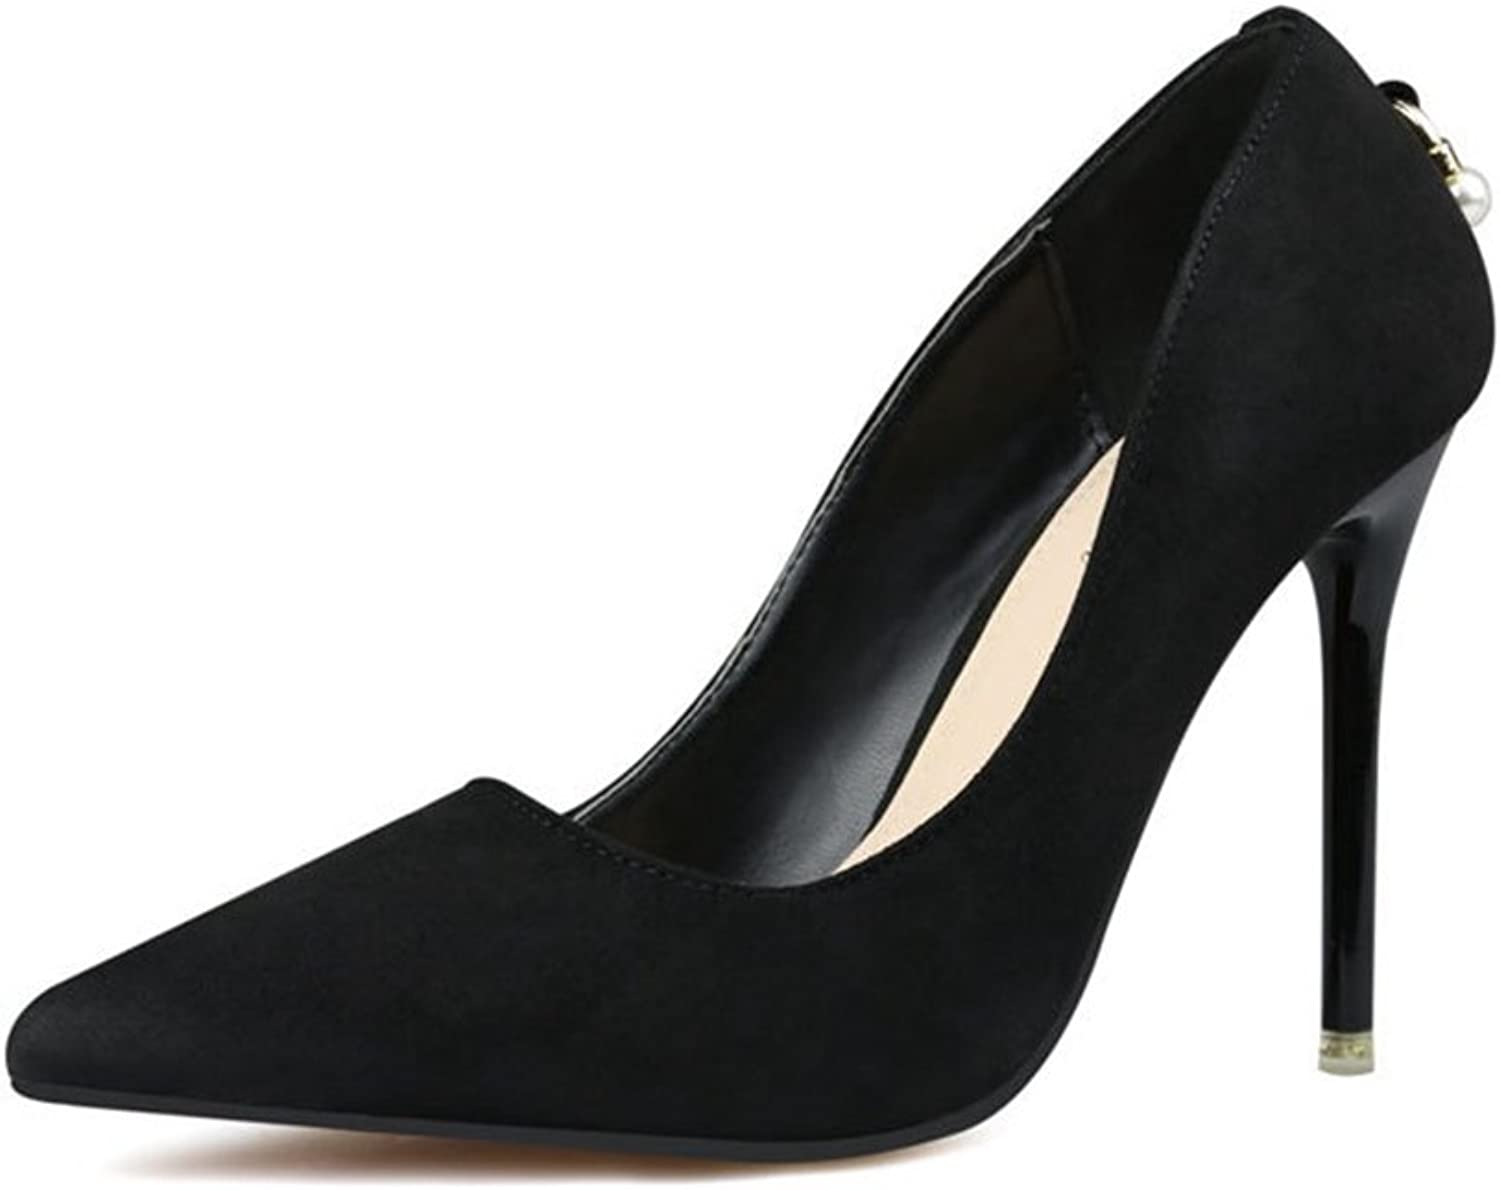 CYBLING Fashion Women Slip On Pointed Toe Stiletto Heels Dress Pumps for Wedding shoes